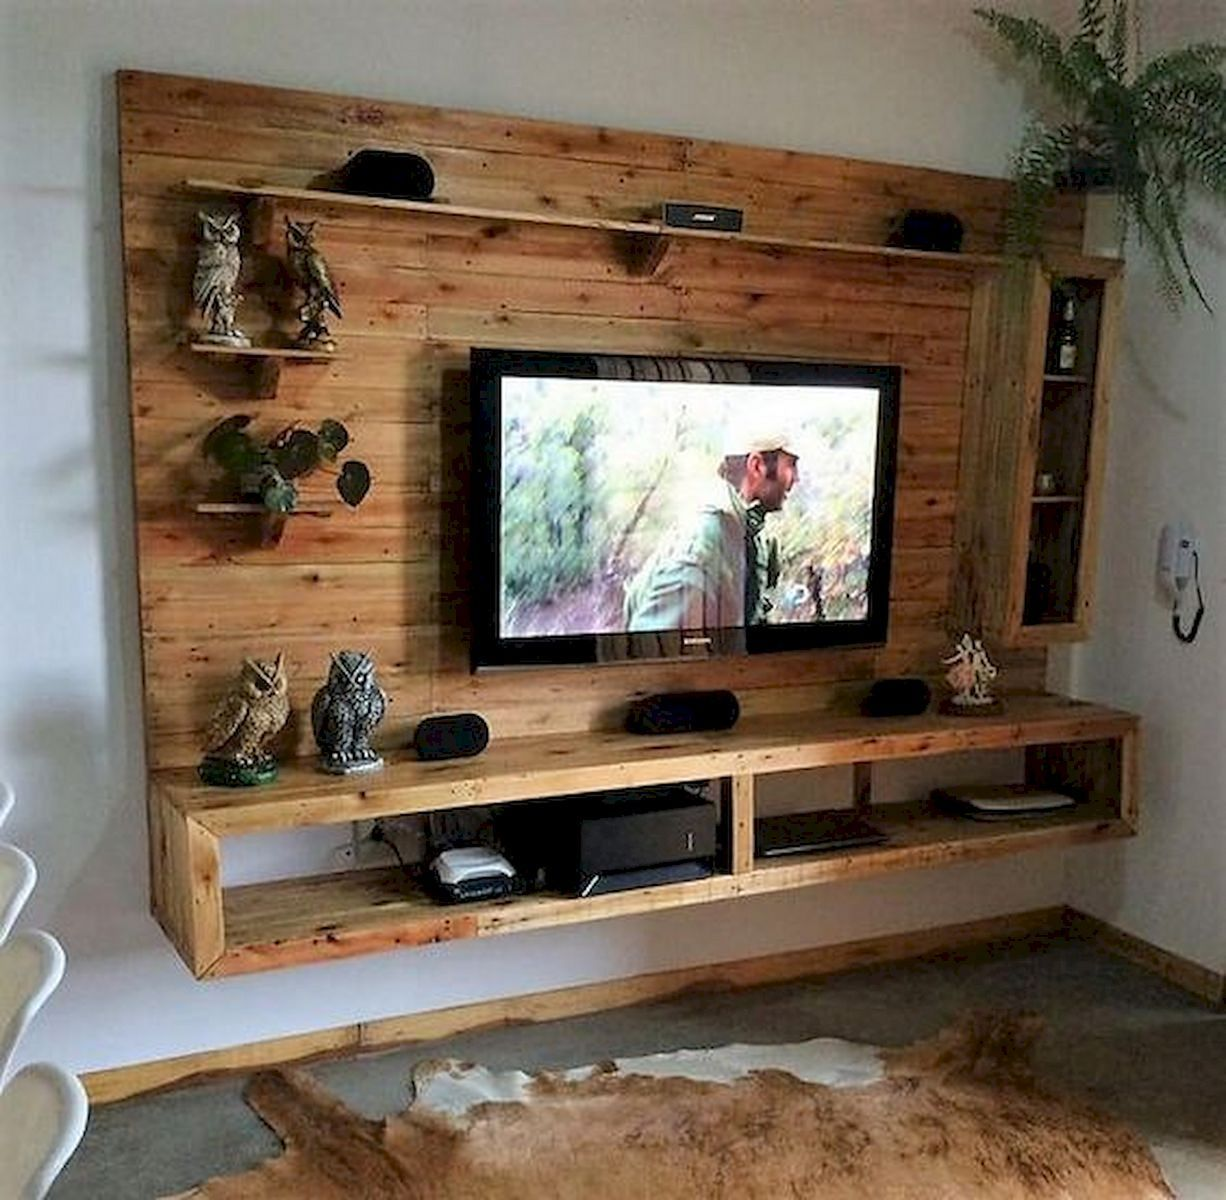 10 Diy Tv Stand Ideas You Can Try At Home In 2020 Diy Pallet Furniture Tv Stand Designs Pallet Tv Stand